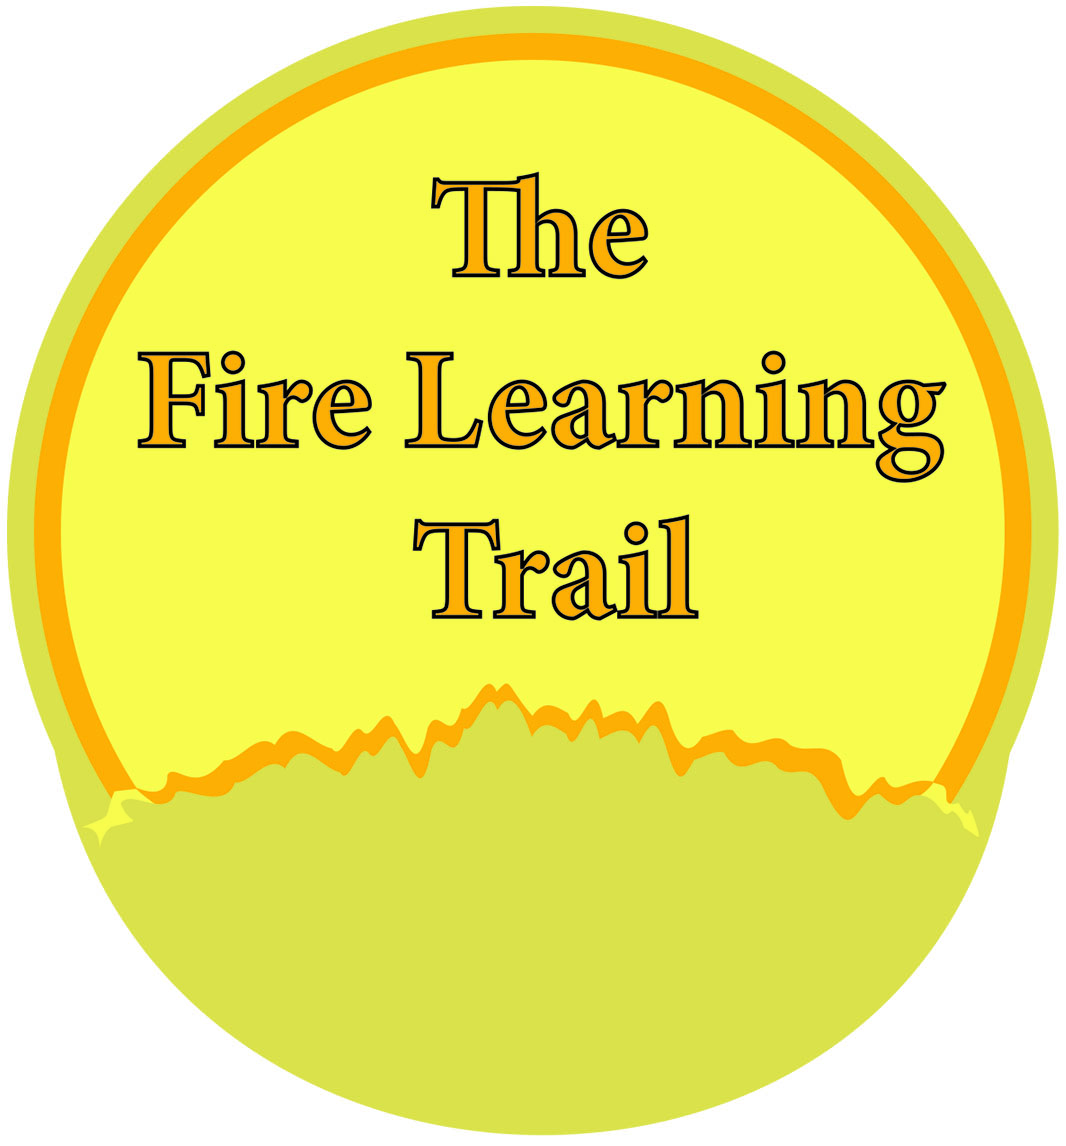 The Fire Learning Trail - is an enhanced interpretive trail with several locations throughout the Appalachian Mountains. The trail introduces visitors to the role of fire in this area as well as wildland firefighters and local history. The trail includes educational signs and a podcast-style audio tour that is available can be downloaded from this page, iTunes (search